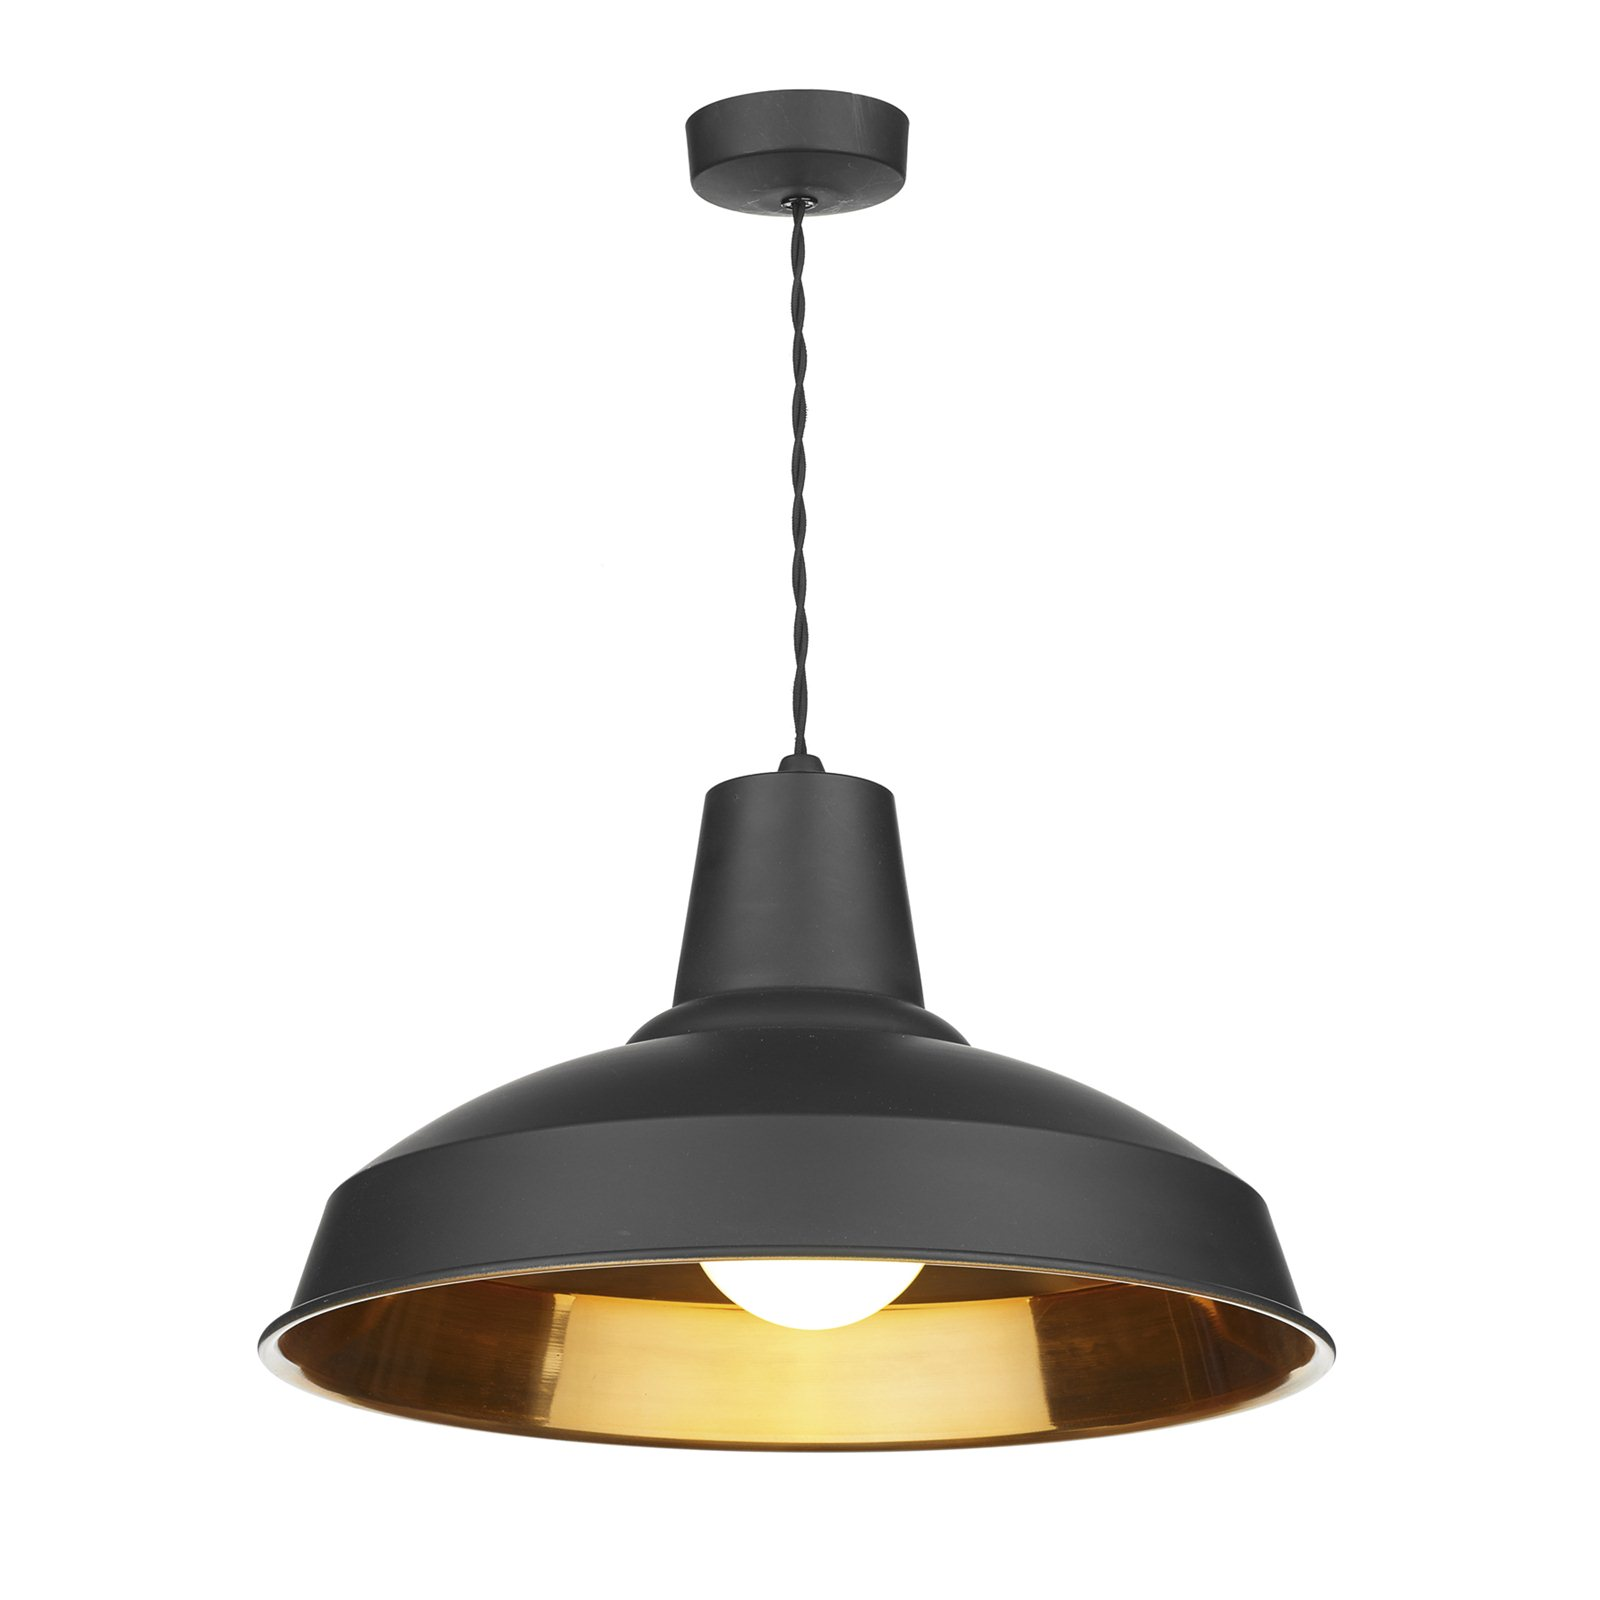 Copper Lighting Pendant Hicks And Hicks Calstock Pendant Light Black And Copper